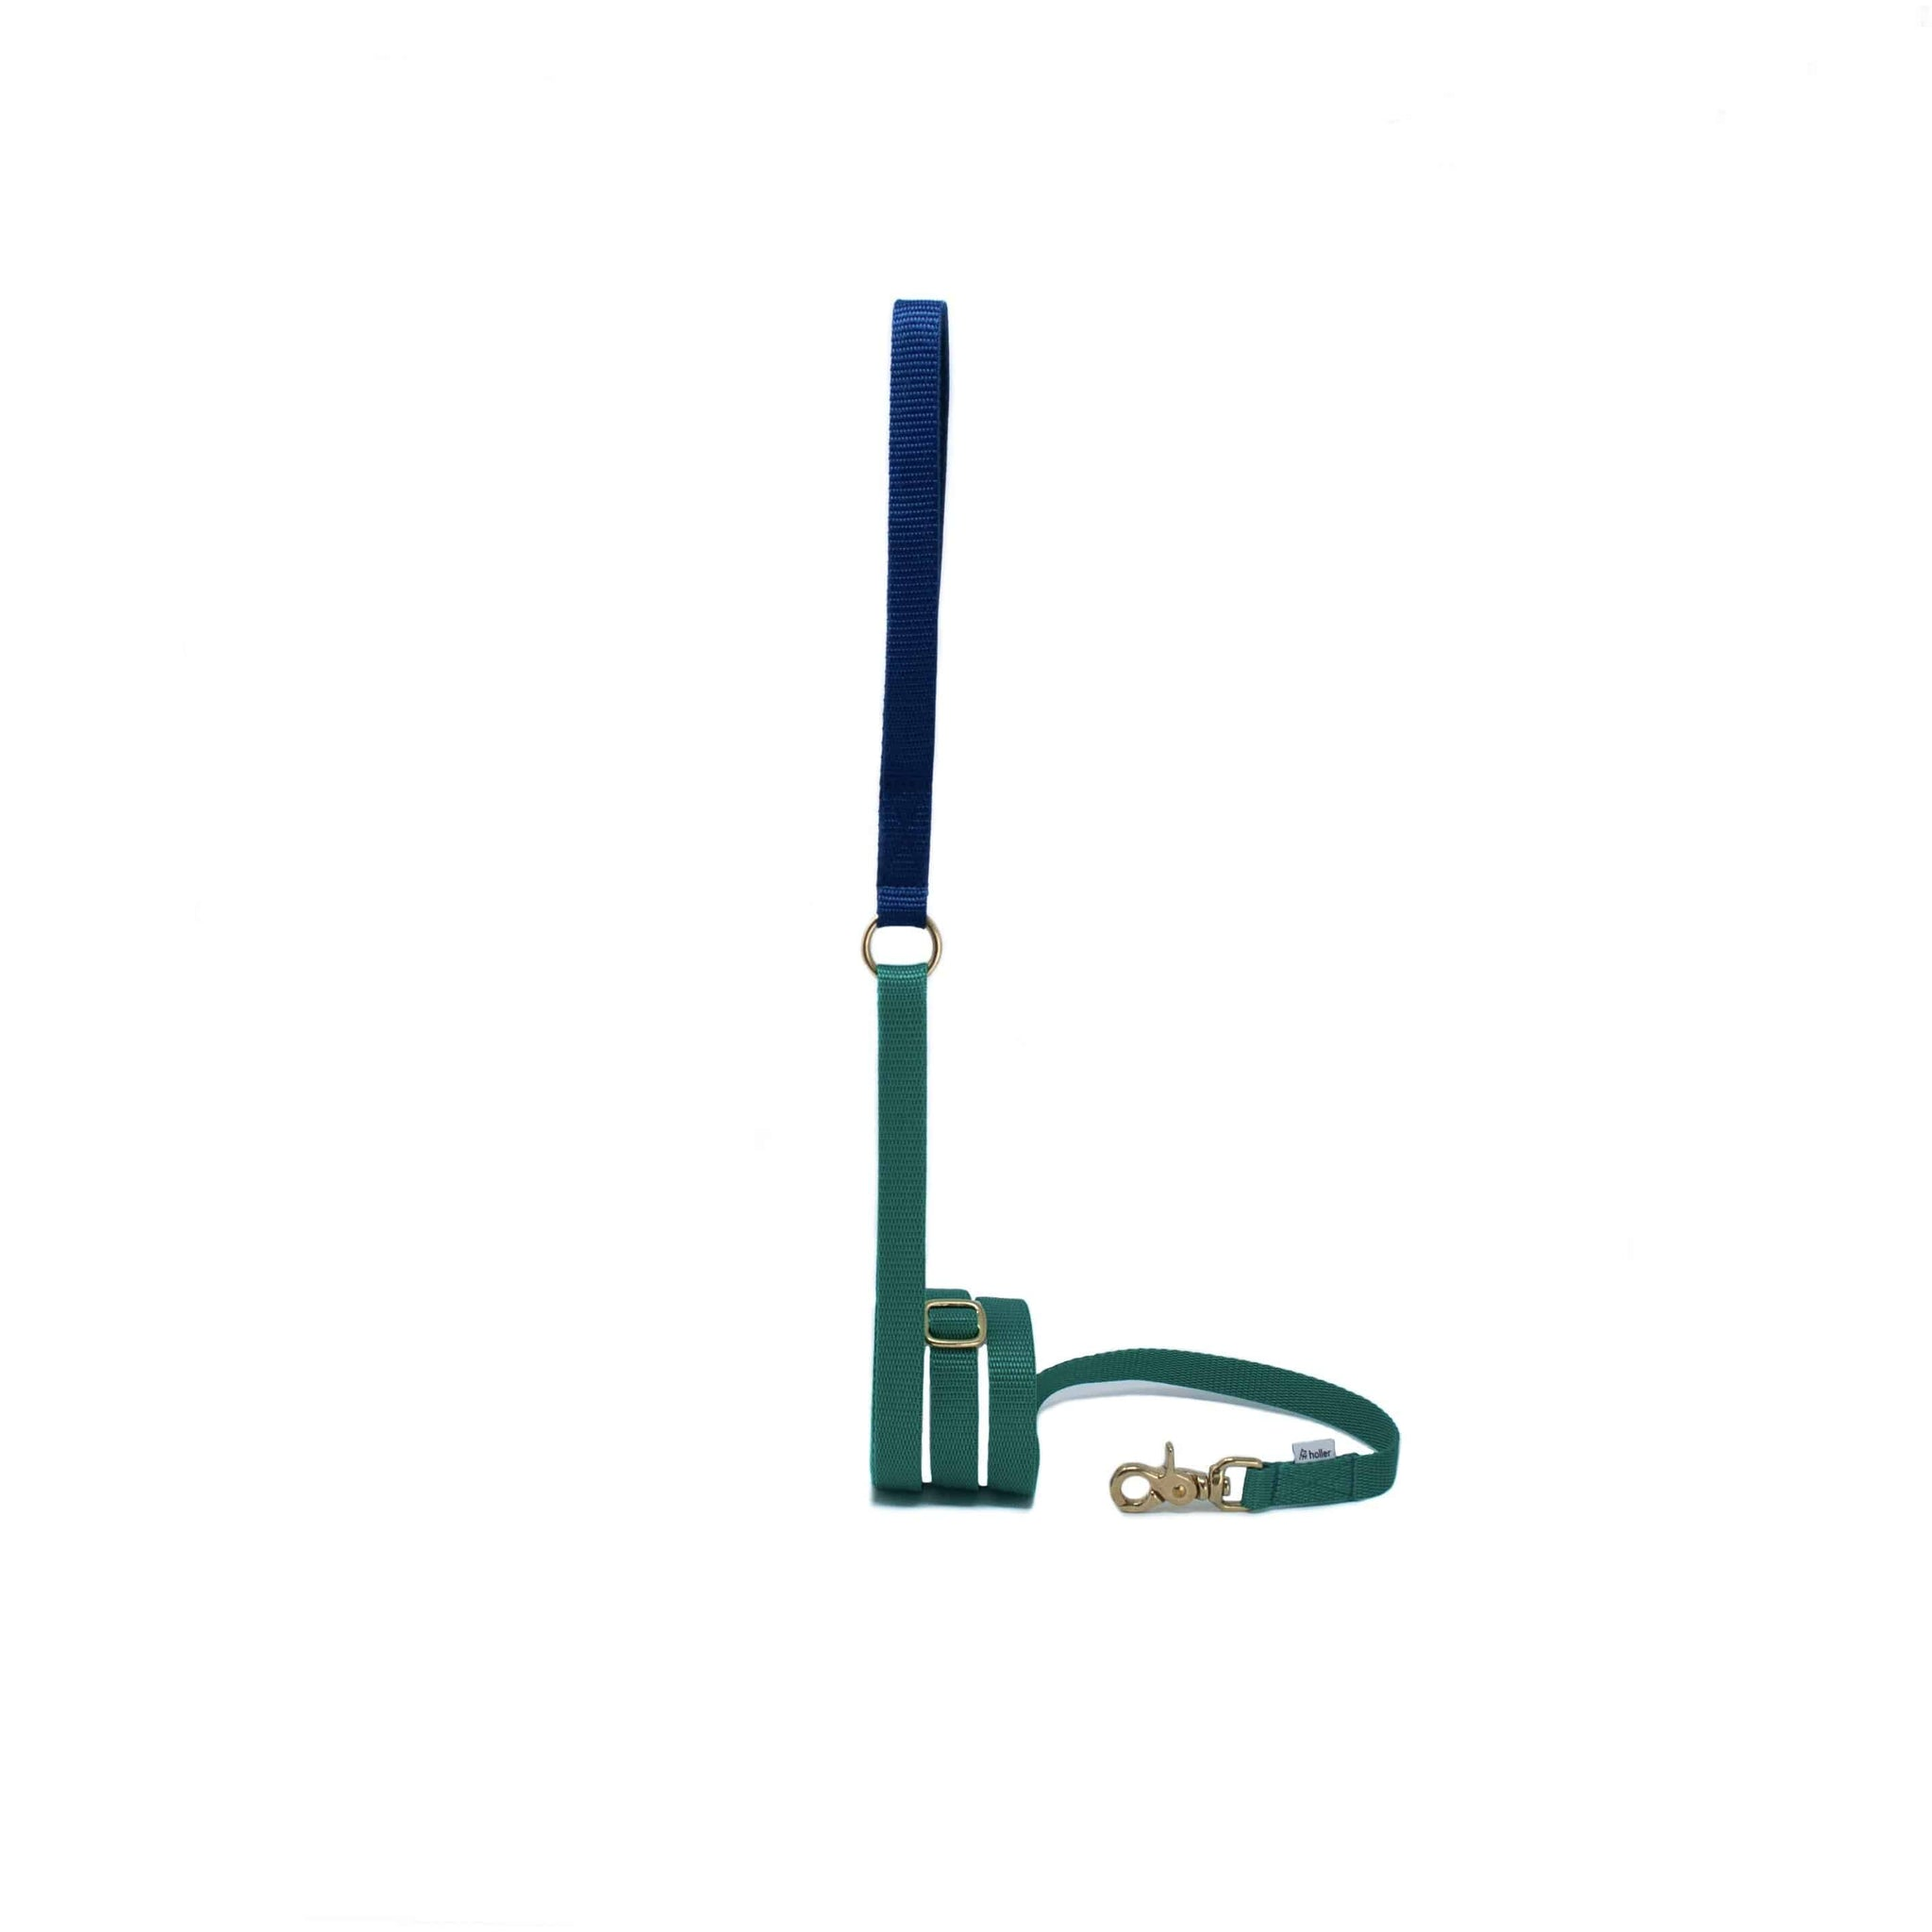 Extendable Holler Lead - Emerald & Navy Fleece Lined Handle - [Holler Brighton]